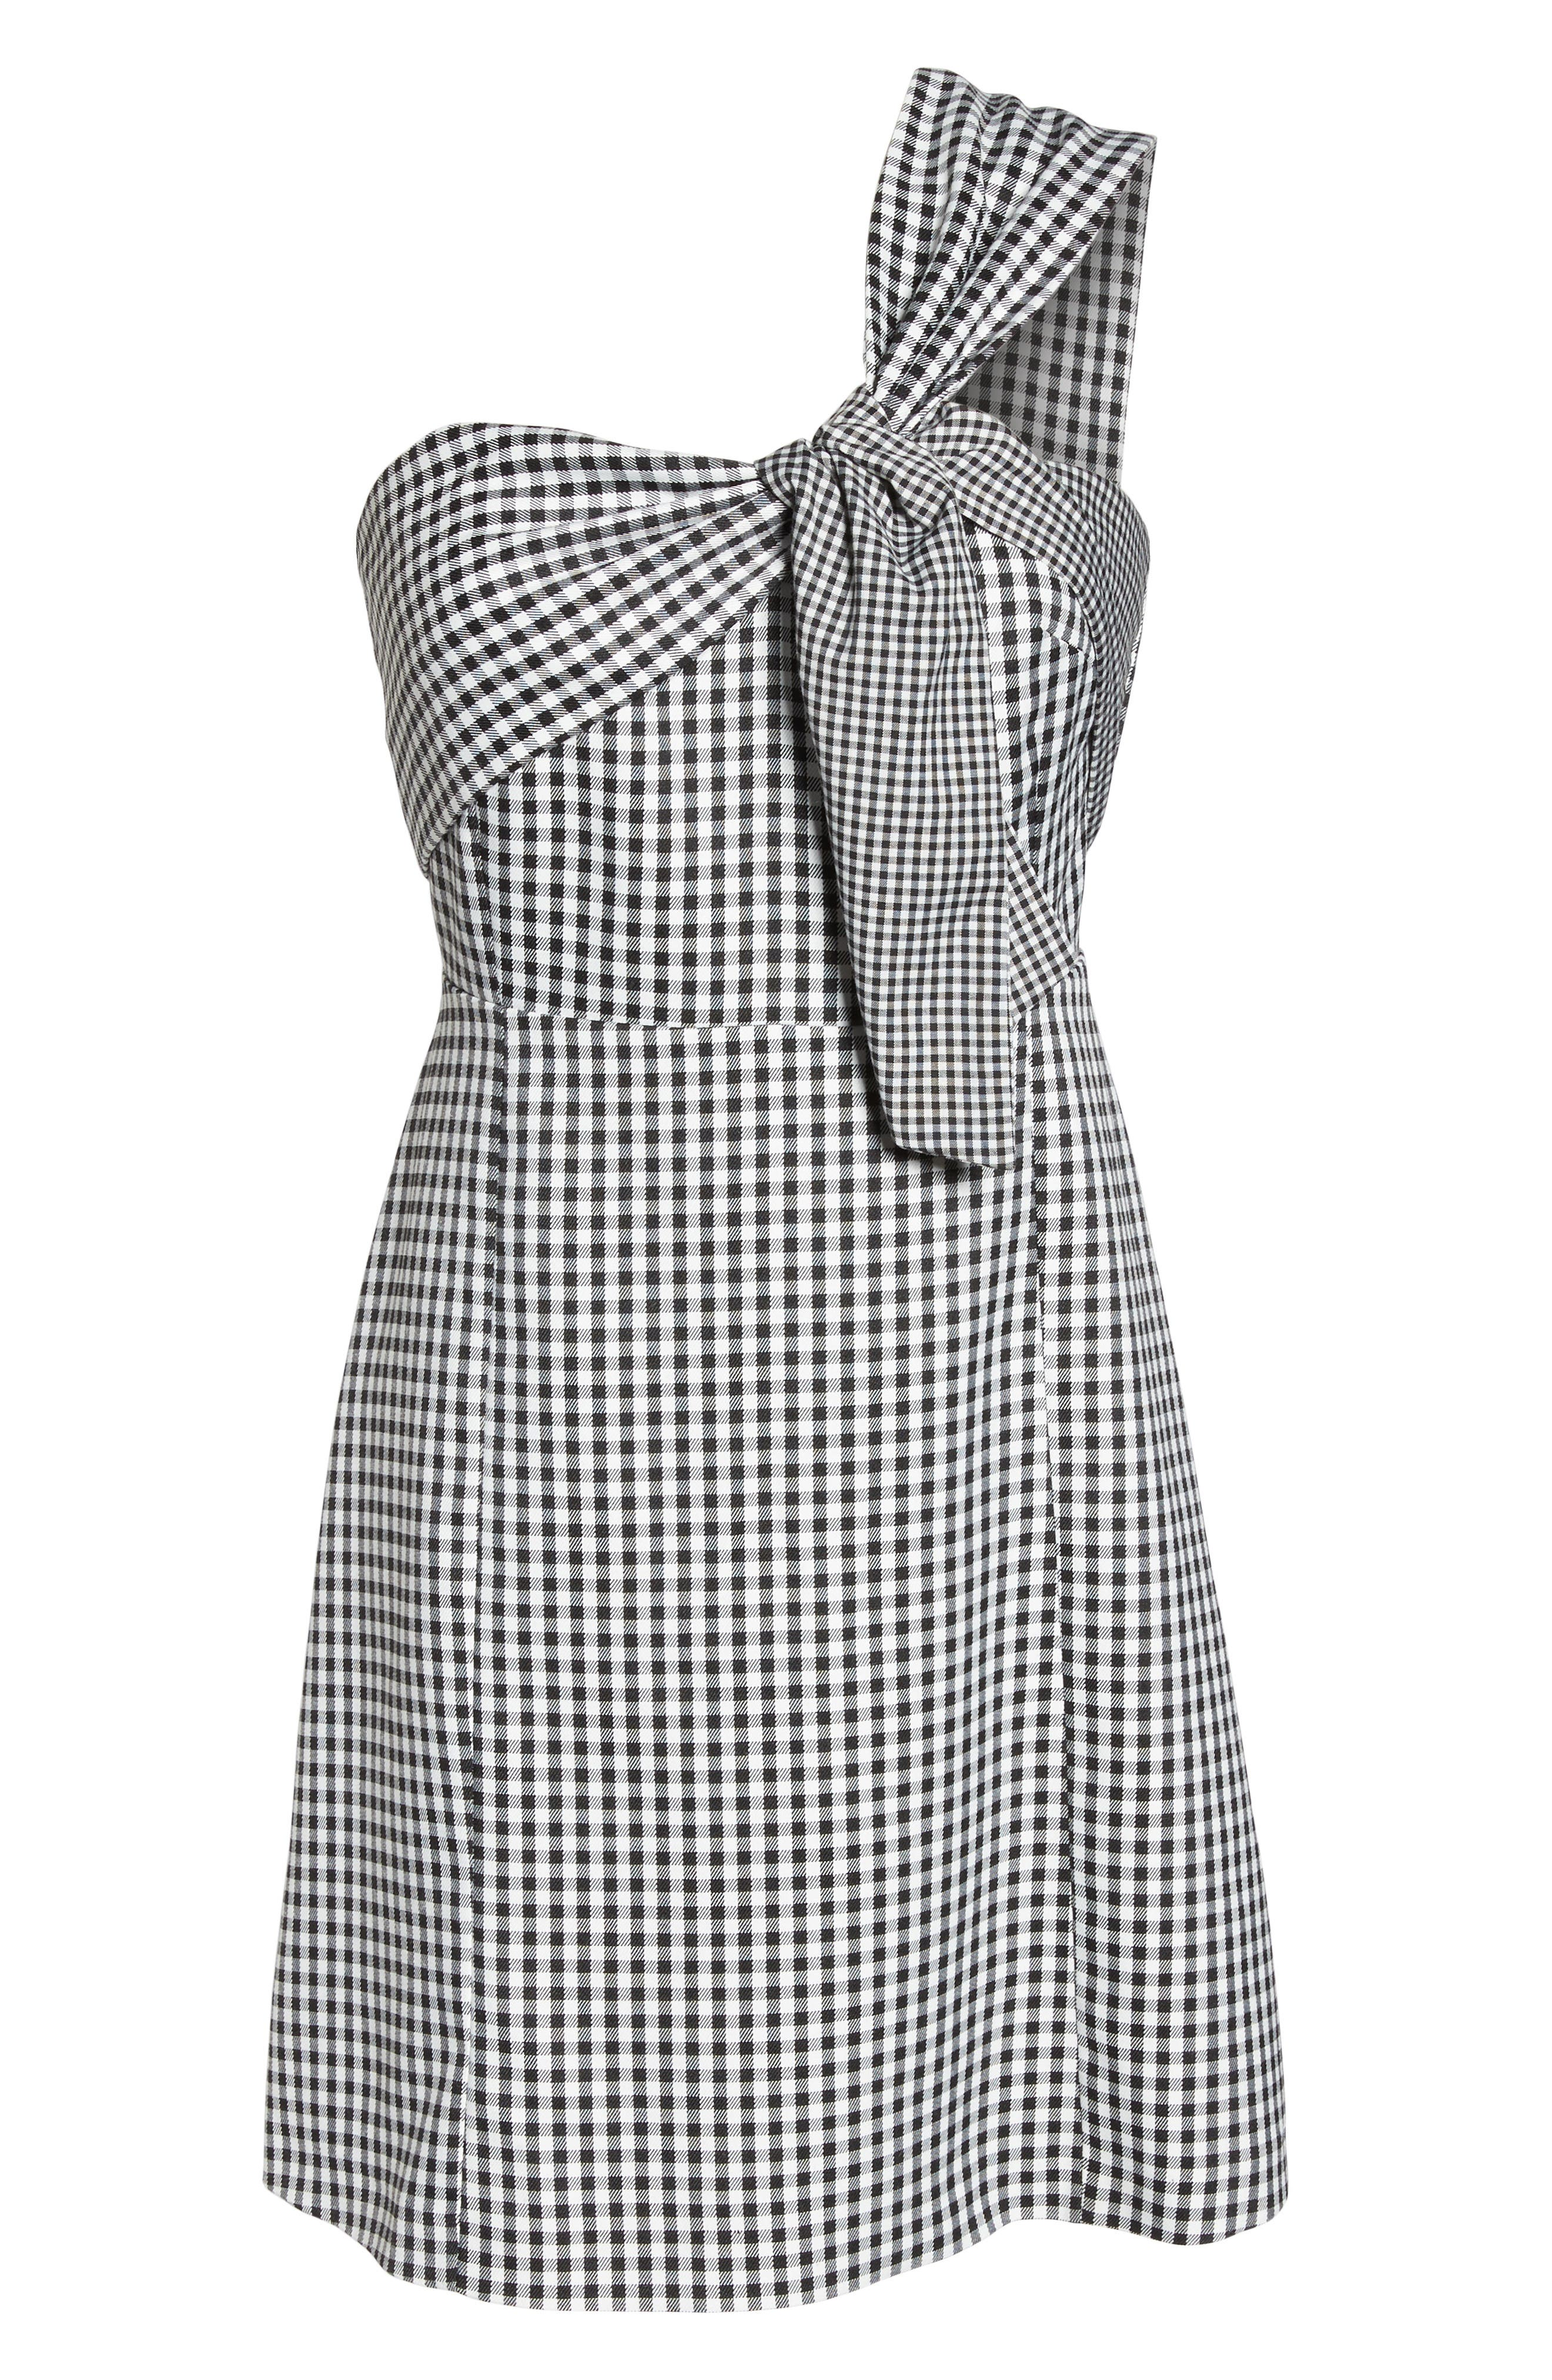 One-Shoulder Gingham Dress,                             Alternate thumbnail 7, color,                             001